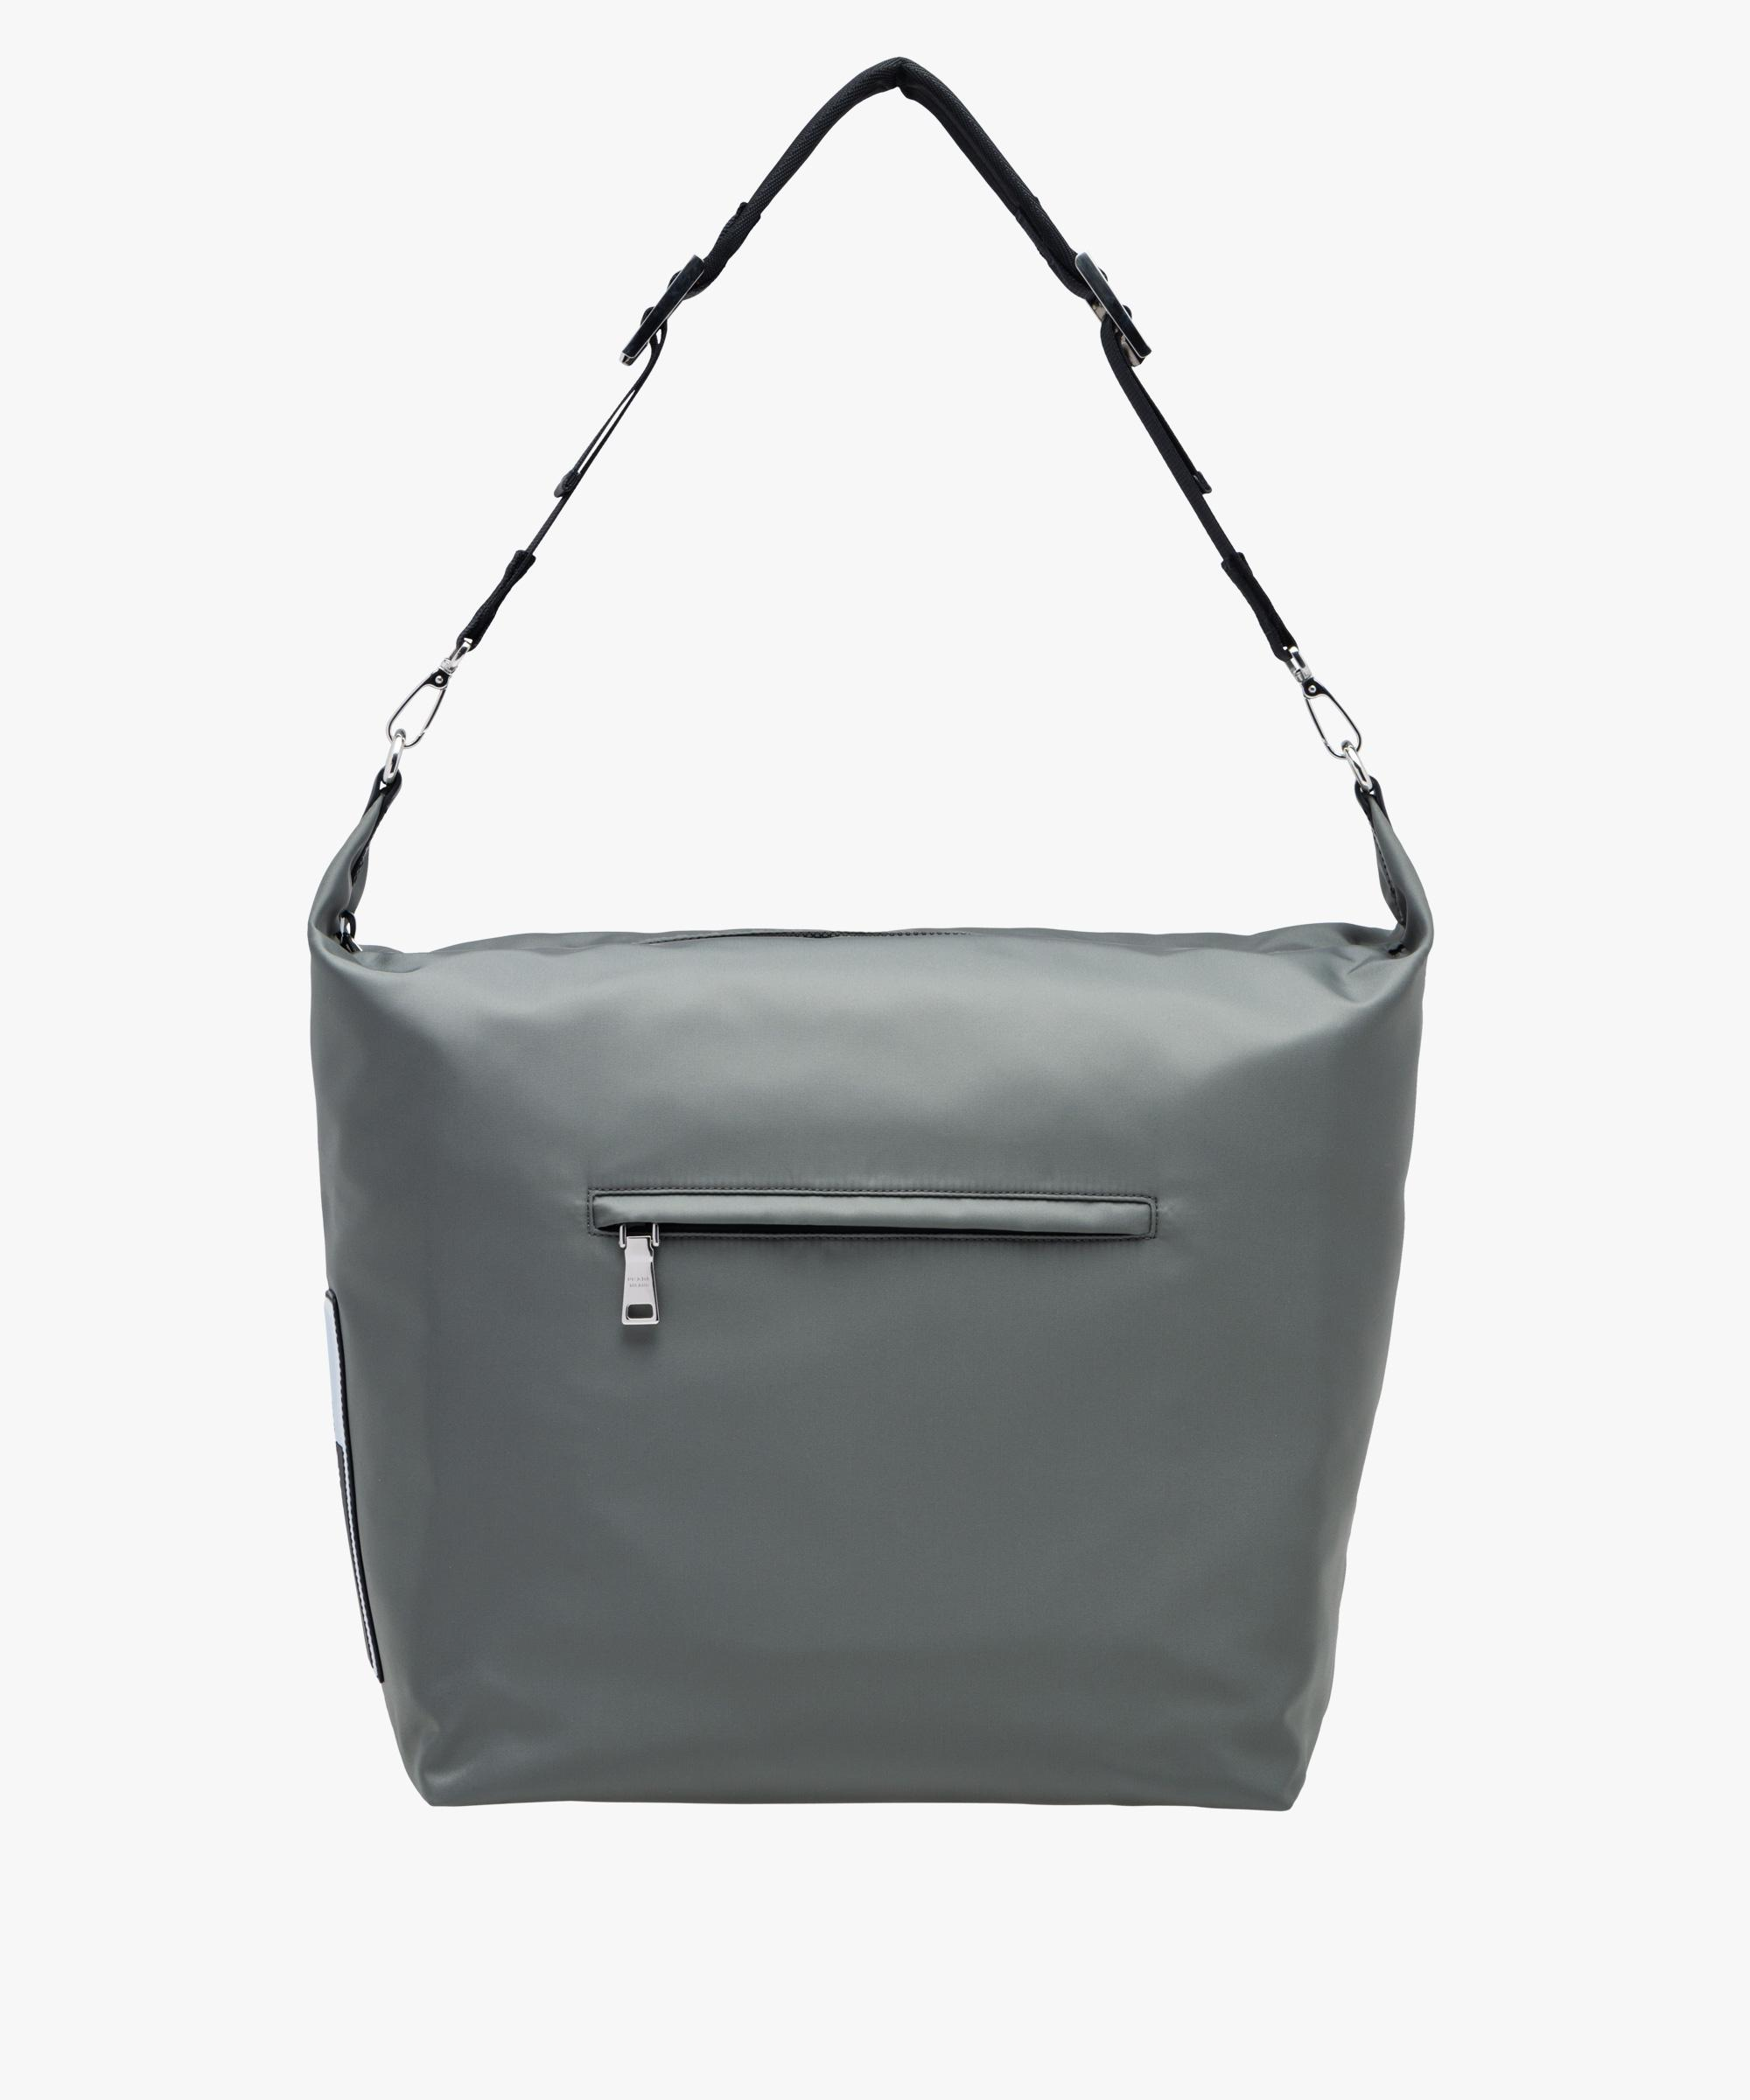 98815269e074 Lyst - Prada Technical Fabric Hobo Bag With Shoulder Strap in Gray ...